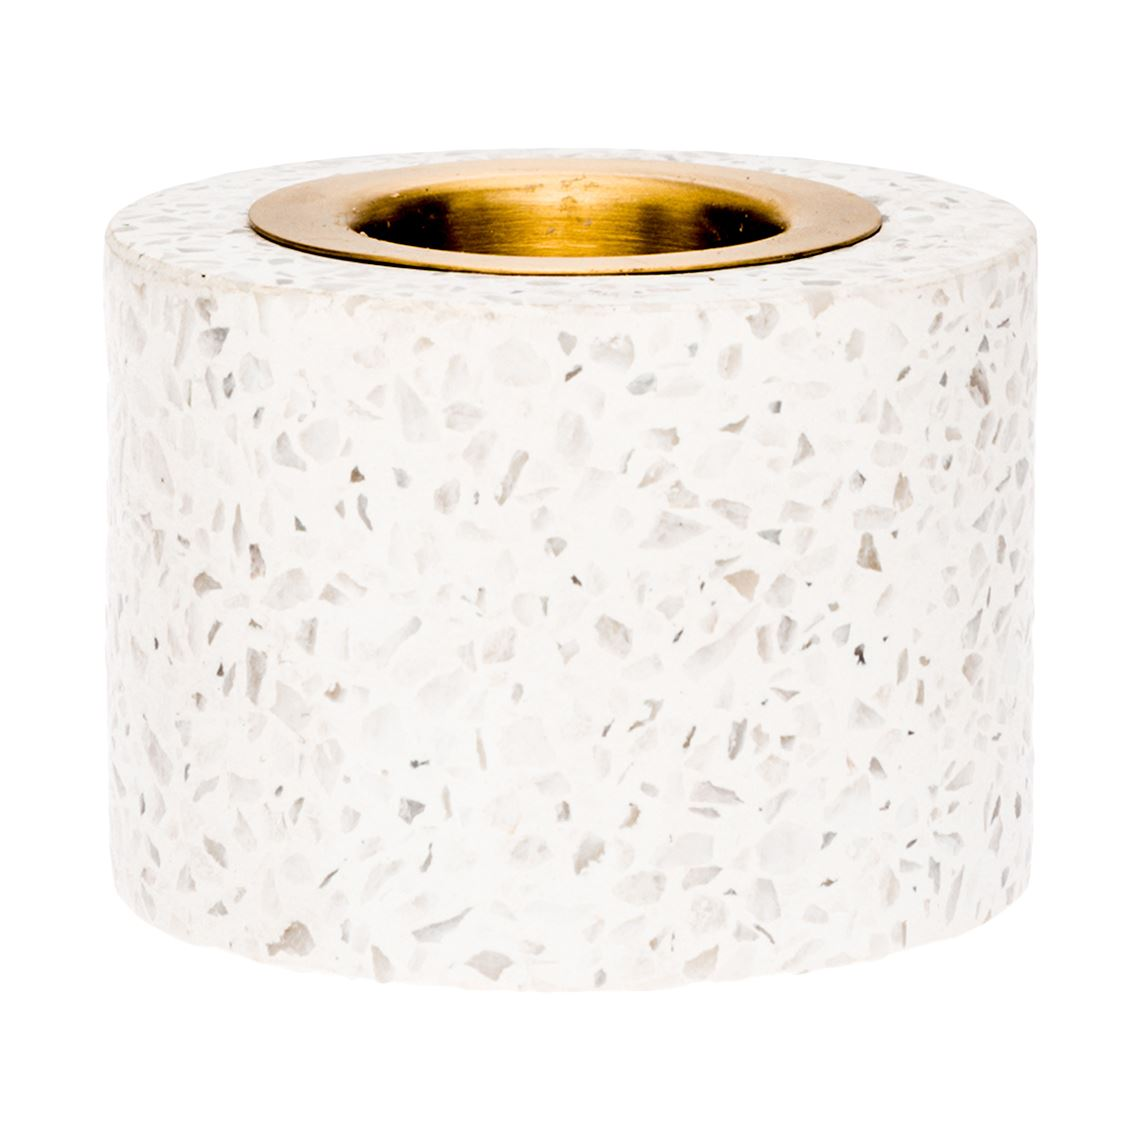 Terrazzo Tealight Holder Size W 9cm x D 9cm x H 6cm in White Terrazzo/Brass Freedom by Freedom, a Plants for sale on Style Sourcebook